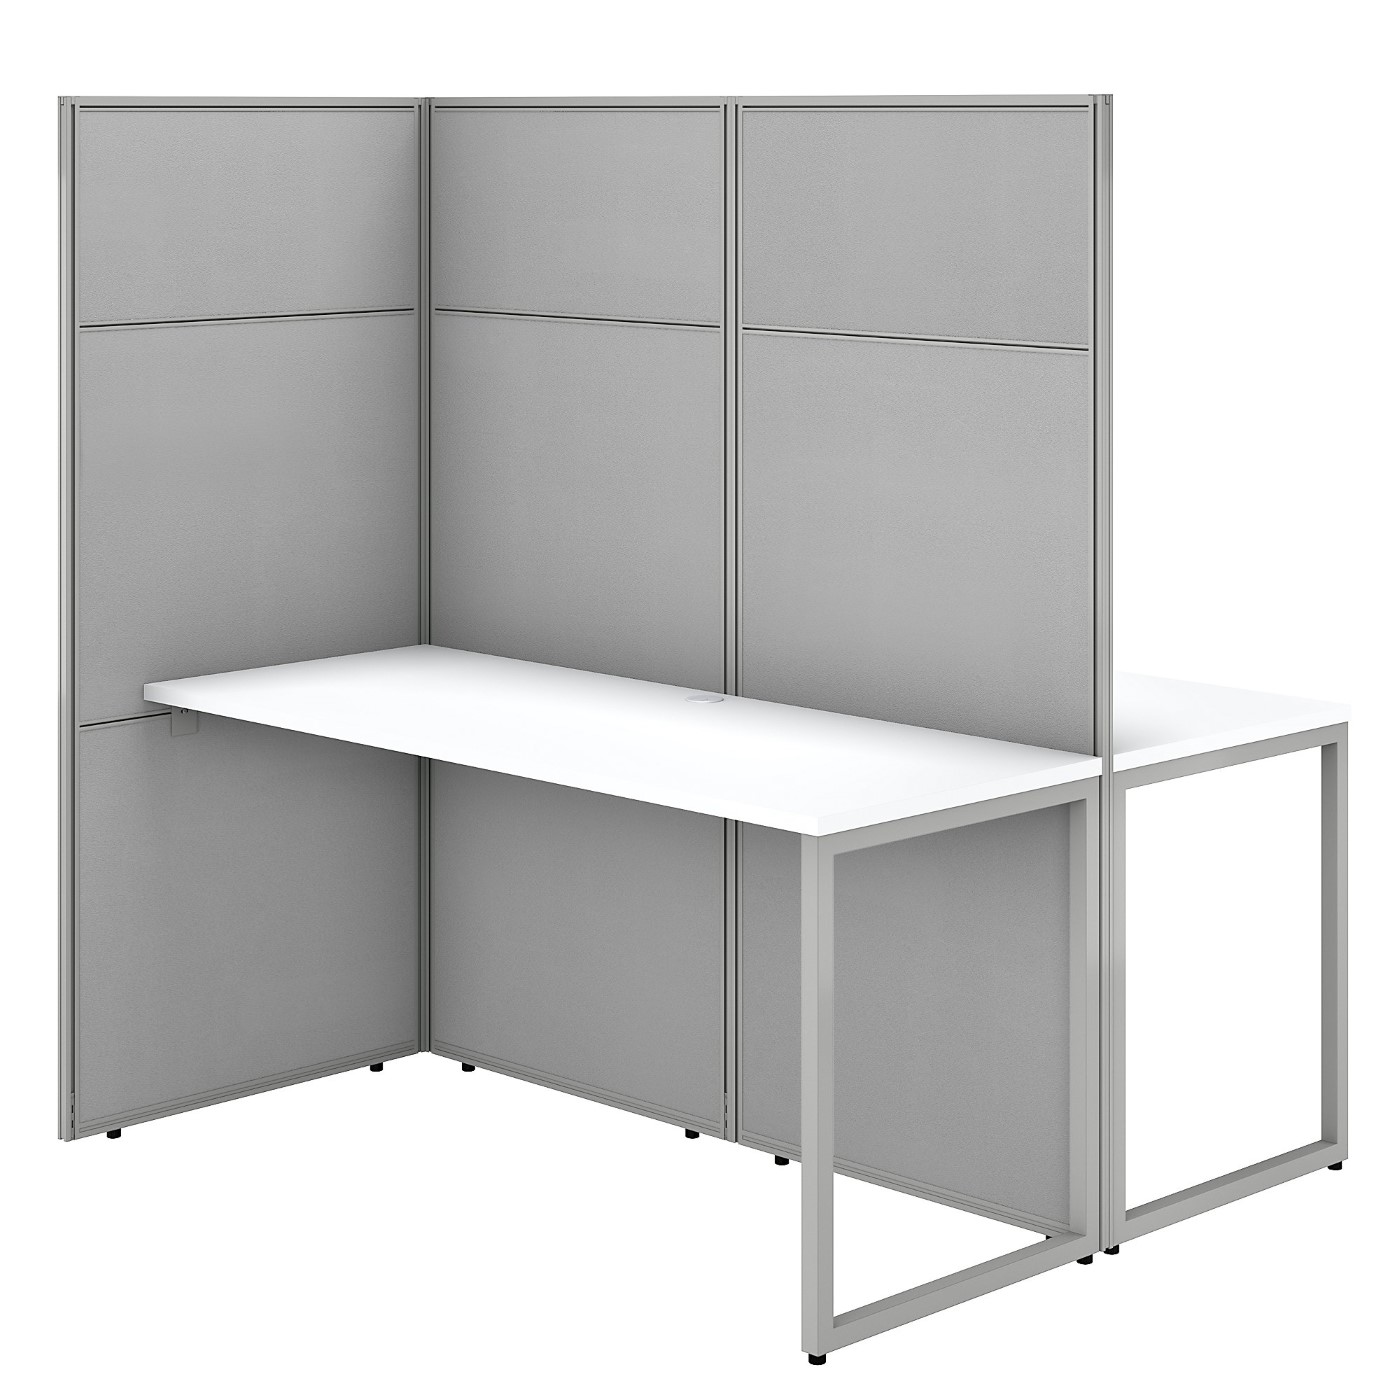 BUSH BUSINESS FURNITURE EASY OFFICE 60W 2 PERSON CUBICLE DESK WORKSTATION WITH 66H PANELS. FREE SHIPPING SALE DEDUCT 10% MORE ENTER '10percent' IN COUPON CODE BOX WHILE CHECKING OUT. ENDS 5-31-20.